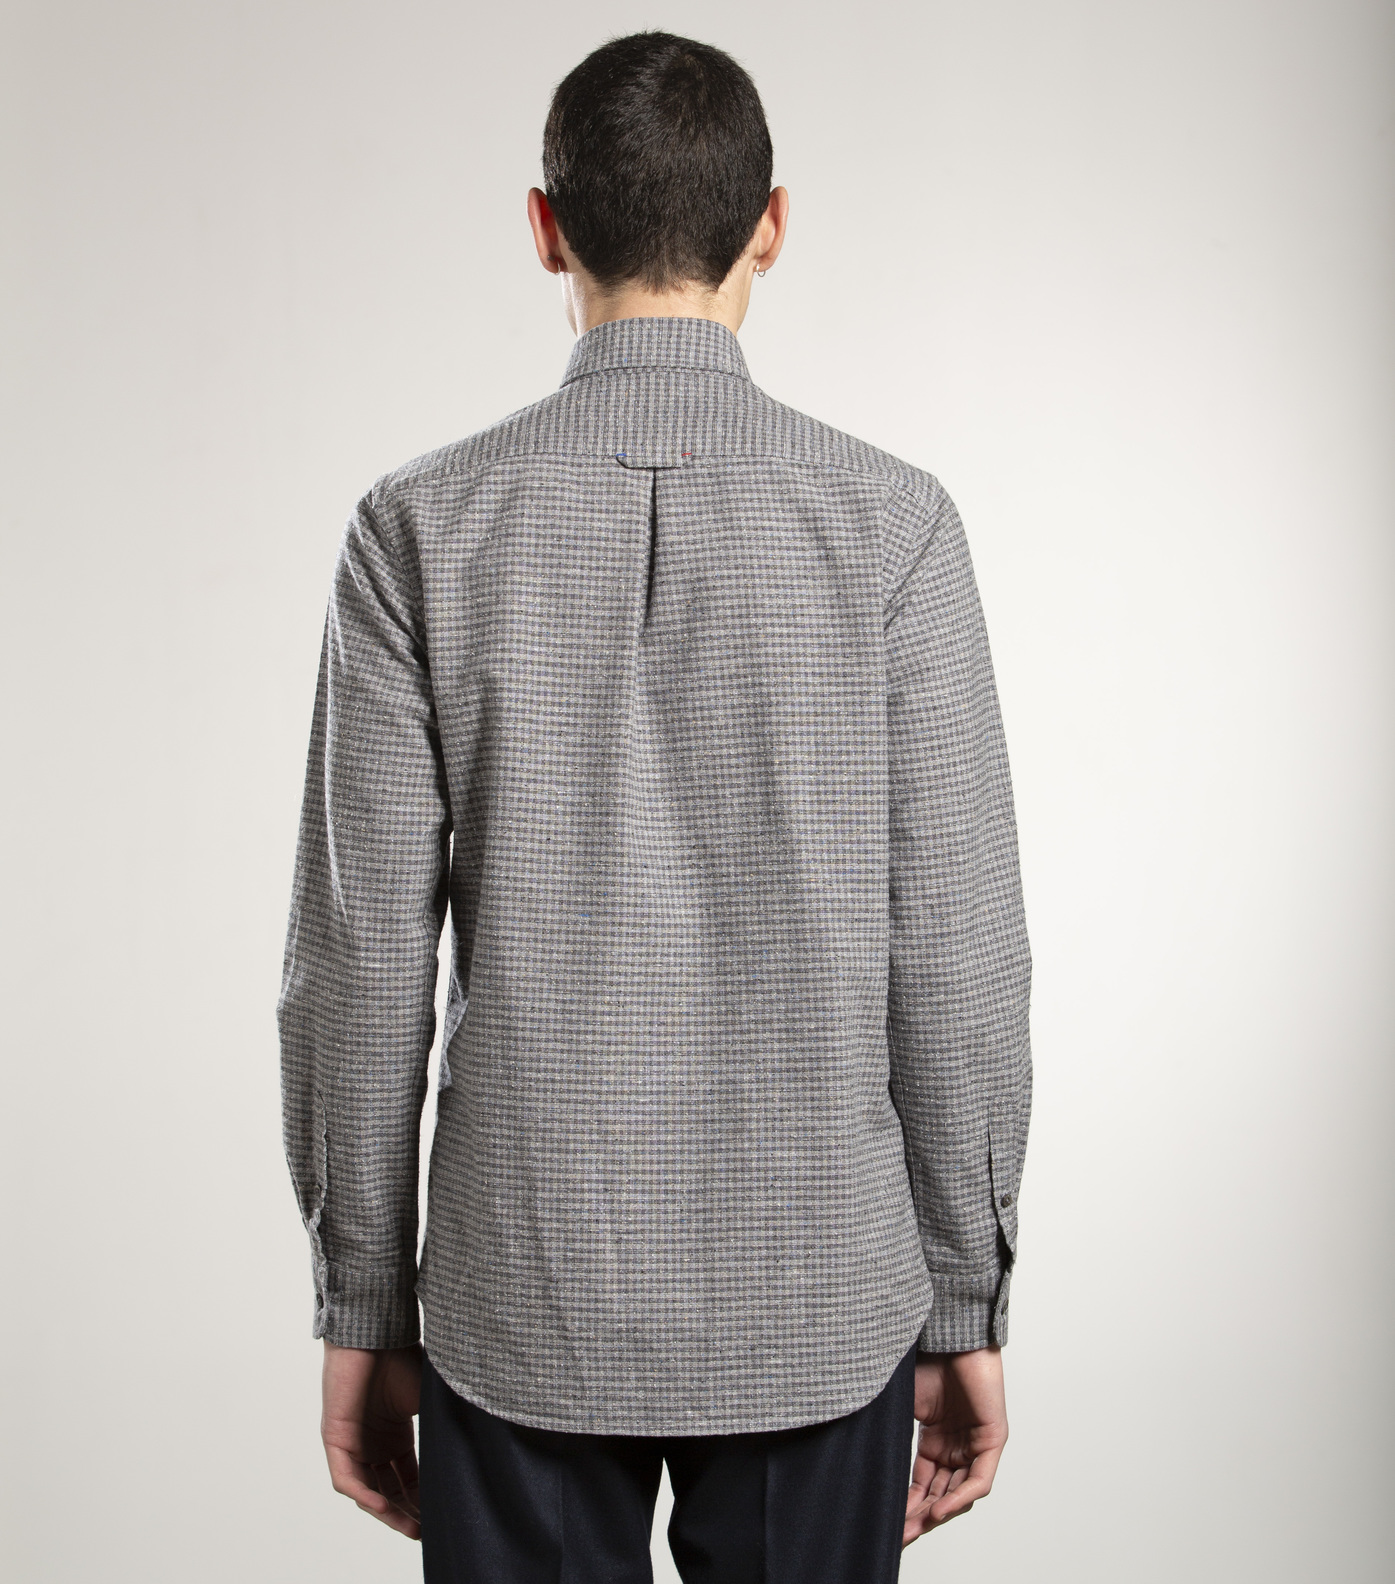 SHIRT EUDES-B - Grey checks